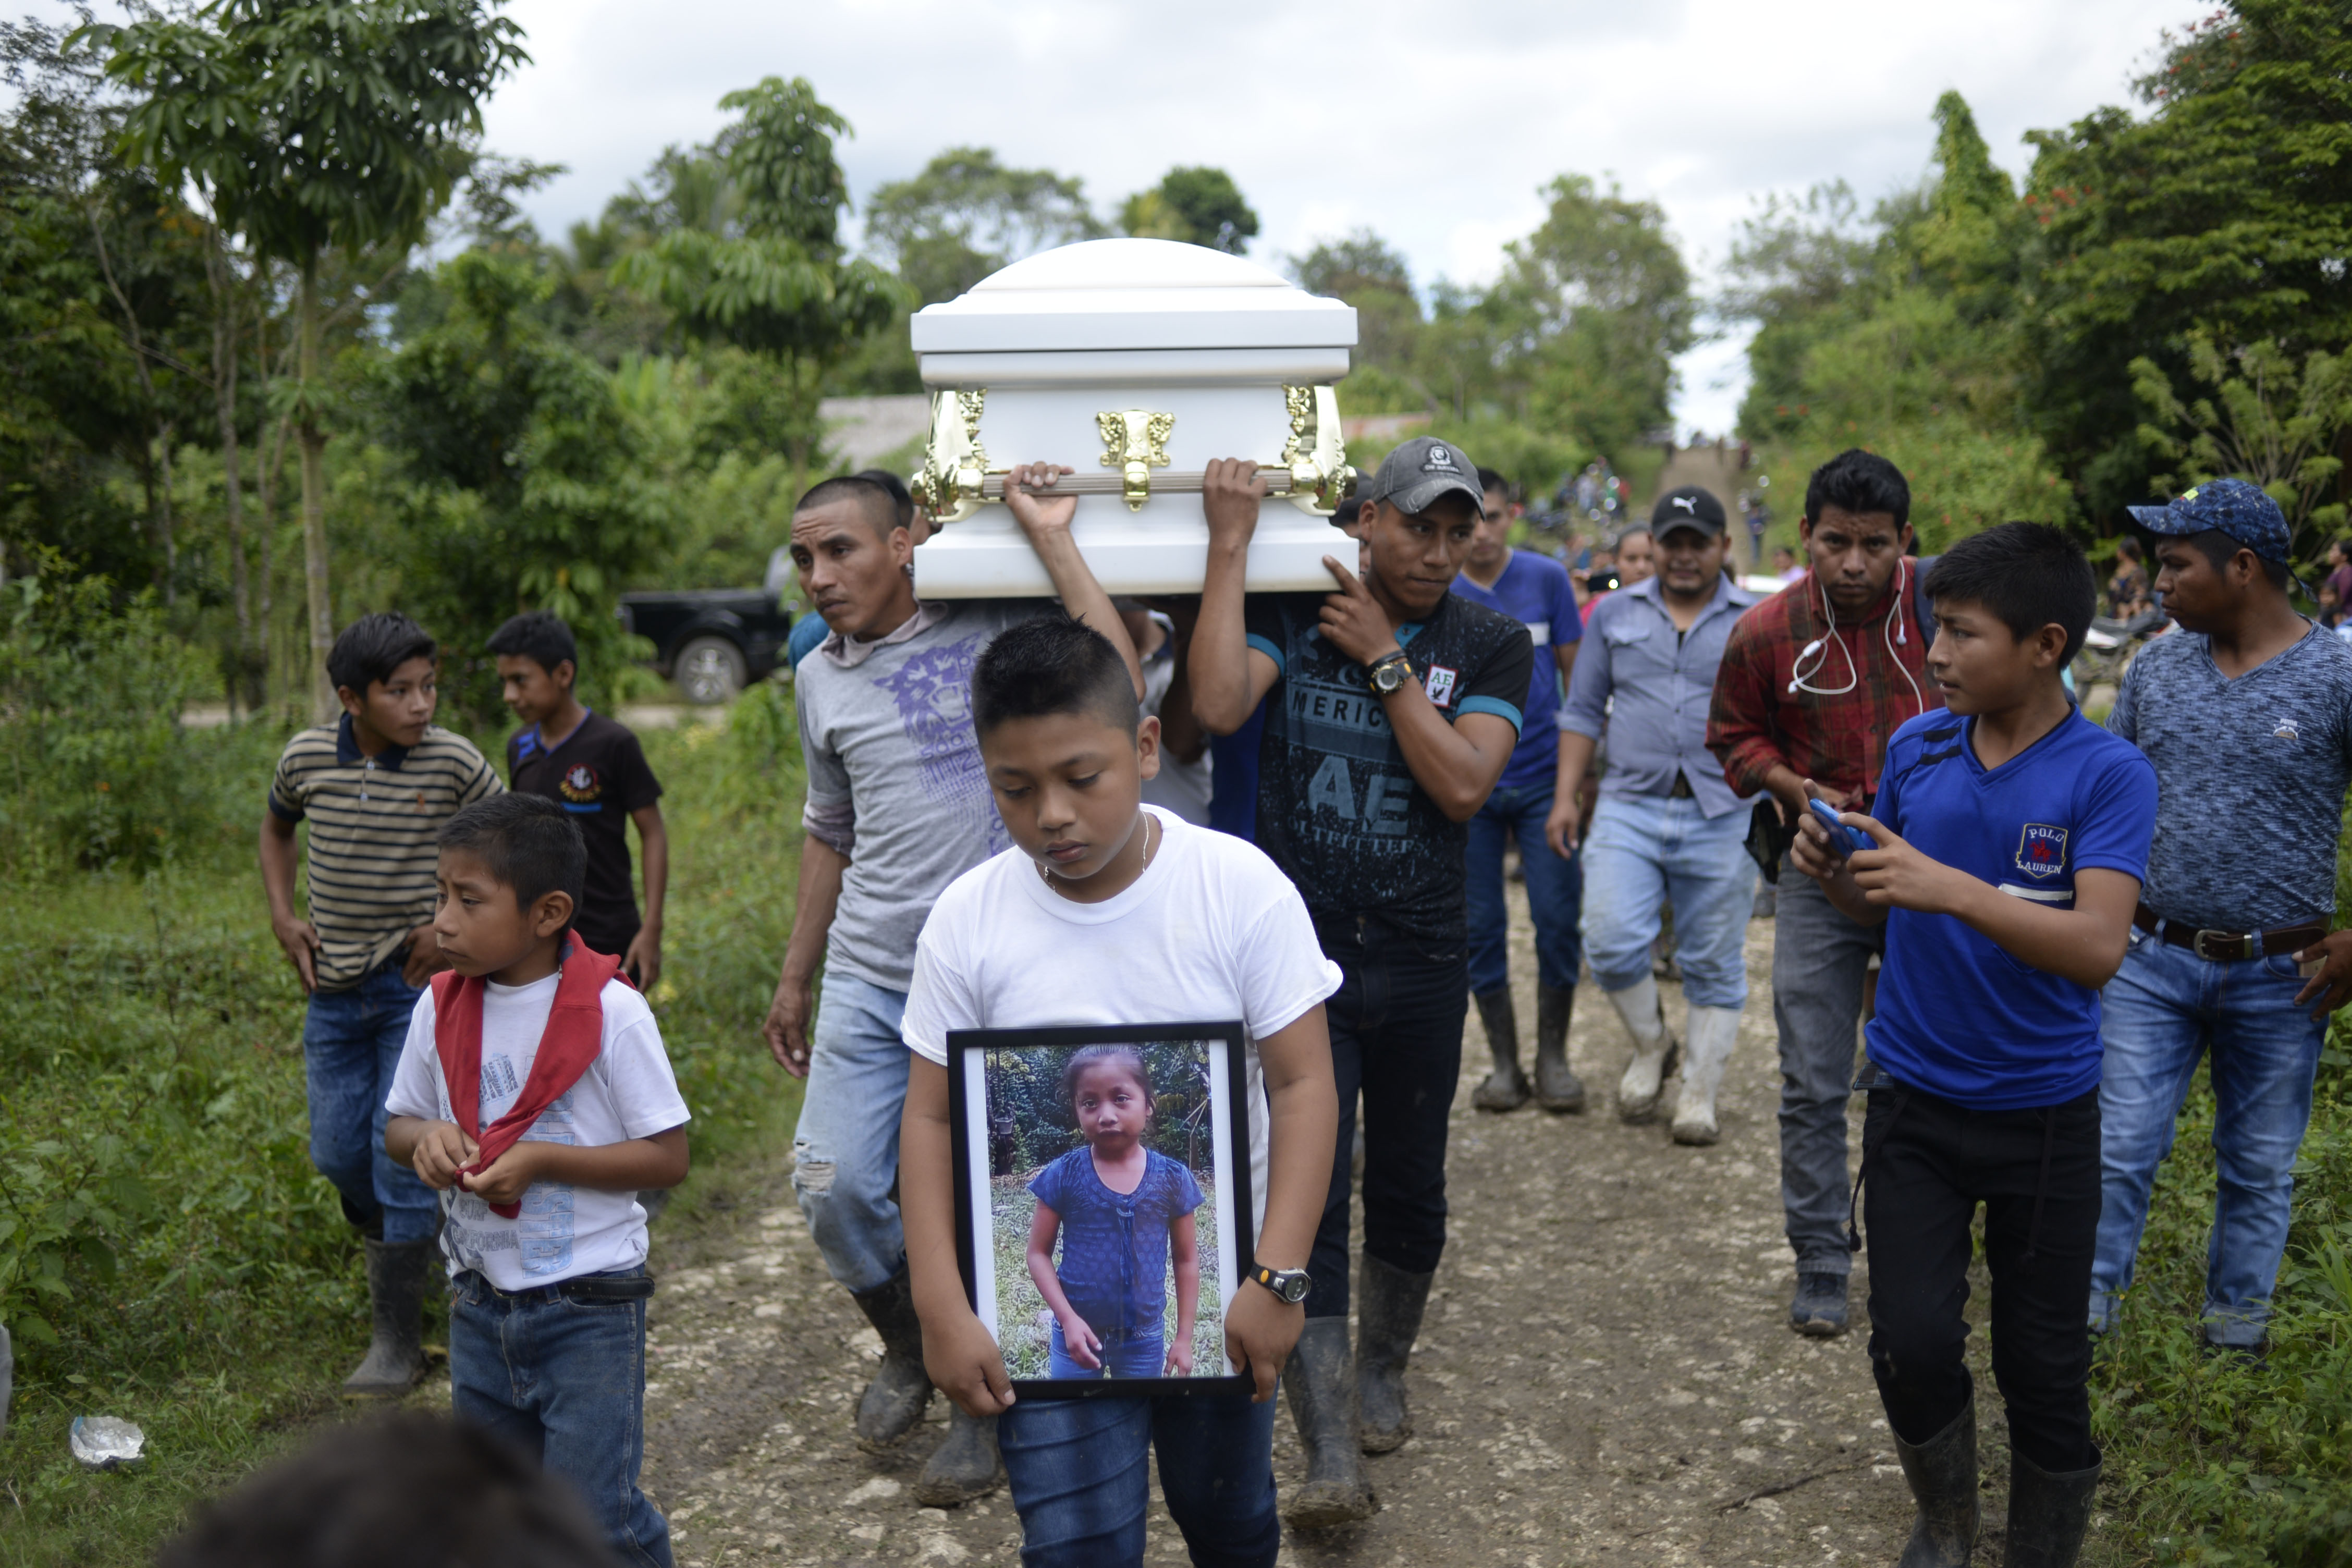 "TOPSHOT - A boy carries a picture of Guatemalan seven-year-old Jakelin Caal, who died in a Texas hospital two days after being taken into custody by US border patrol agents in a remote stretch of the New Mexico desert, as her coffin is taken from Raxruha to the cemetery in San Antonio Secortez, both villages in Alta Verapaz Department, 320 km north of Guatemala City, on December 25, 2018. - Jakelin Caal died after being arrested with her father and others crossing from Mexico into the US on December 6. Together they had travelled more than 3,000 km from their hometown of Raxruha, Guatemala. According to local media citing US Customs and Border Protection, the cause of death was ""dehydration and shock"". (Photo by JOHAN ORDONEZ/AFP/Getty Images)"